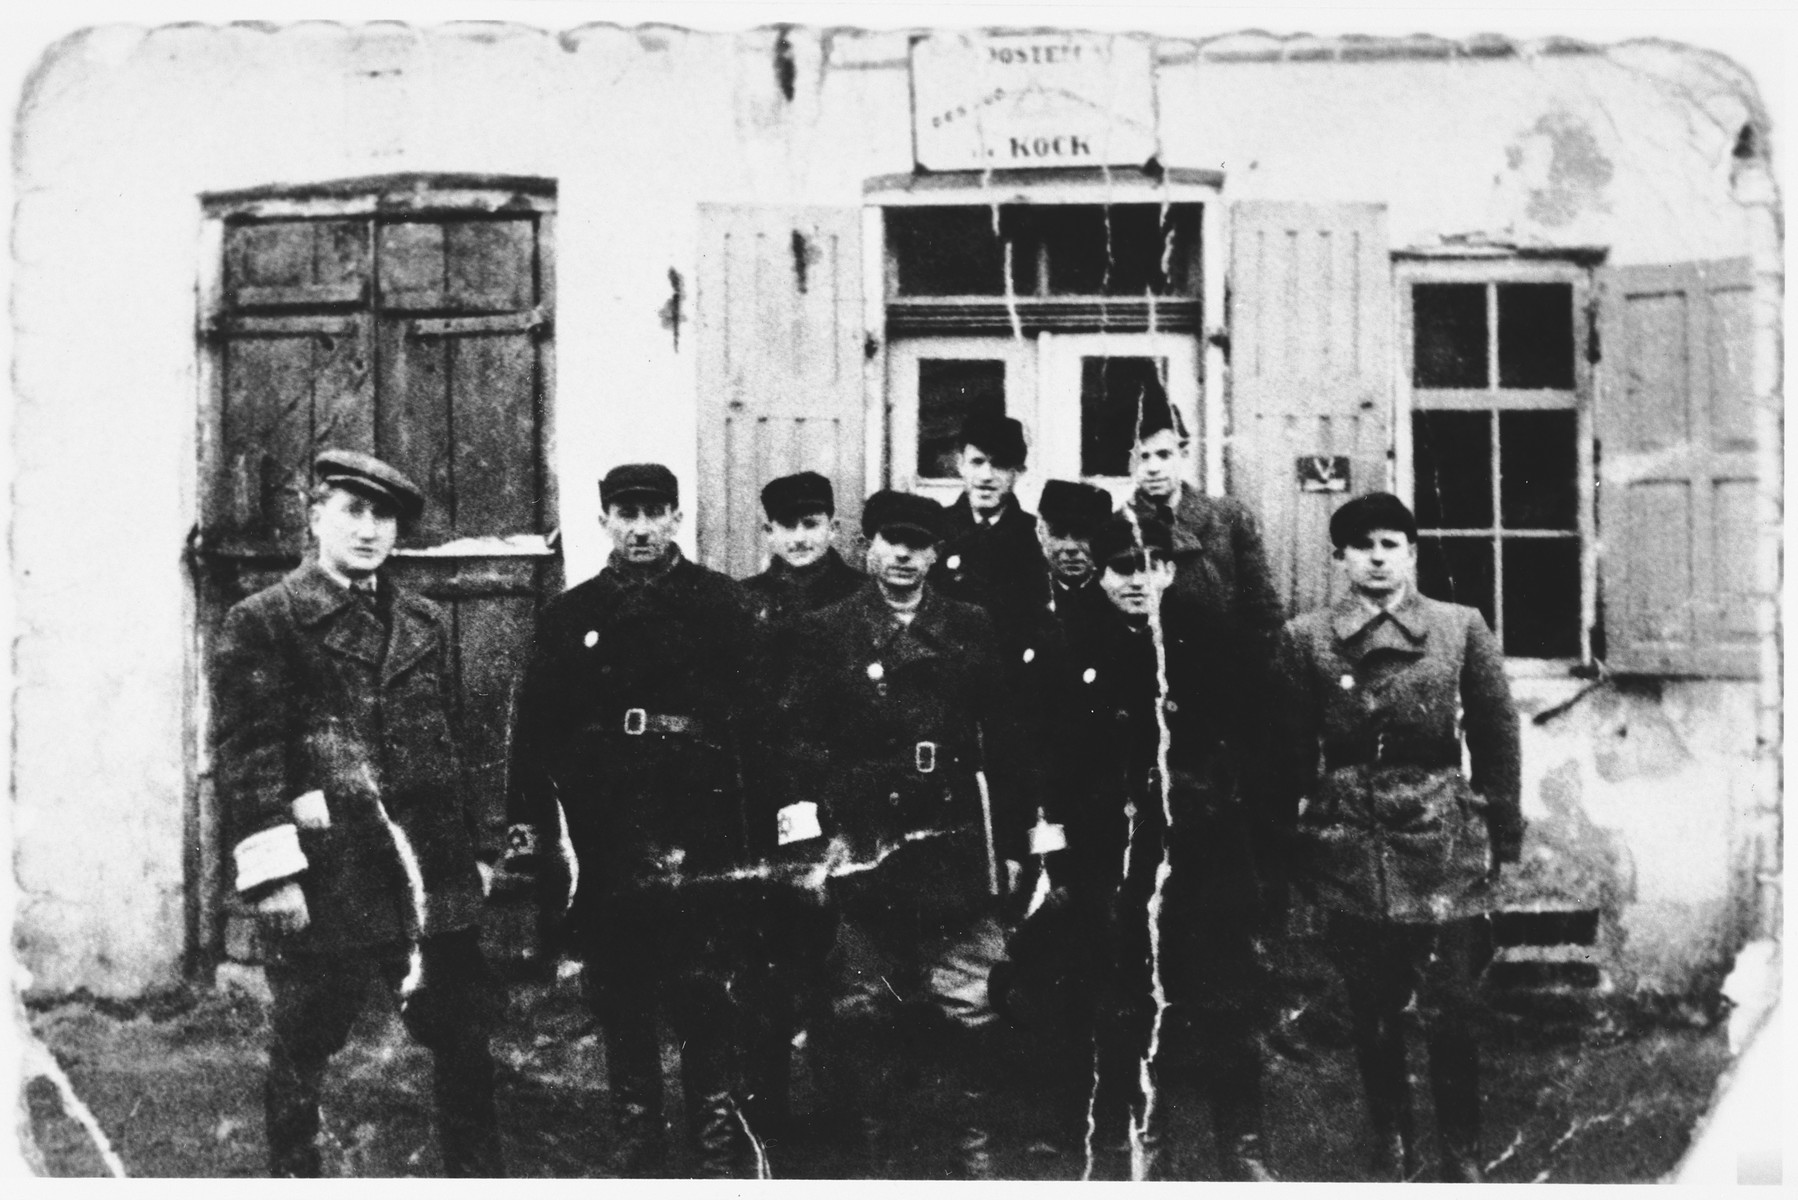 Jewish workmen wearing armbands stand outside the Krock building in an unidentified ghetto.